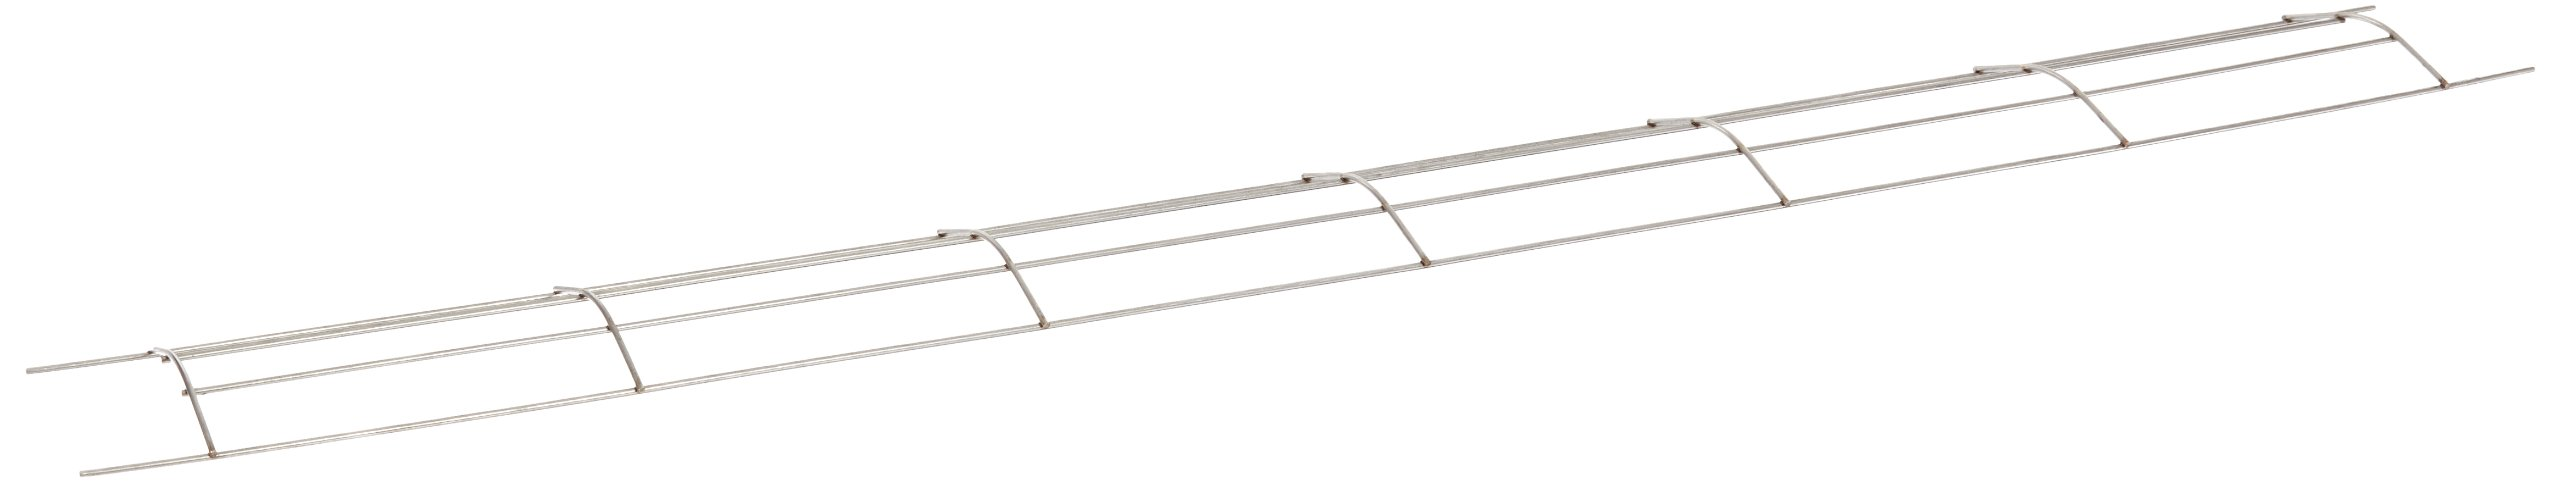 TPI Corporation OCHWG-46 Wire Guard, Stainless Steel, Used with OCH-46 Series Quartz Infrared Heaters